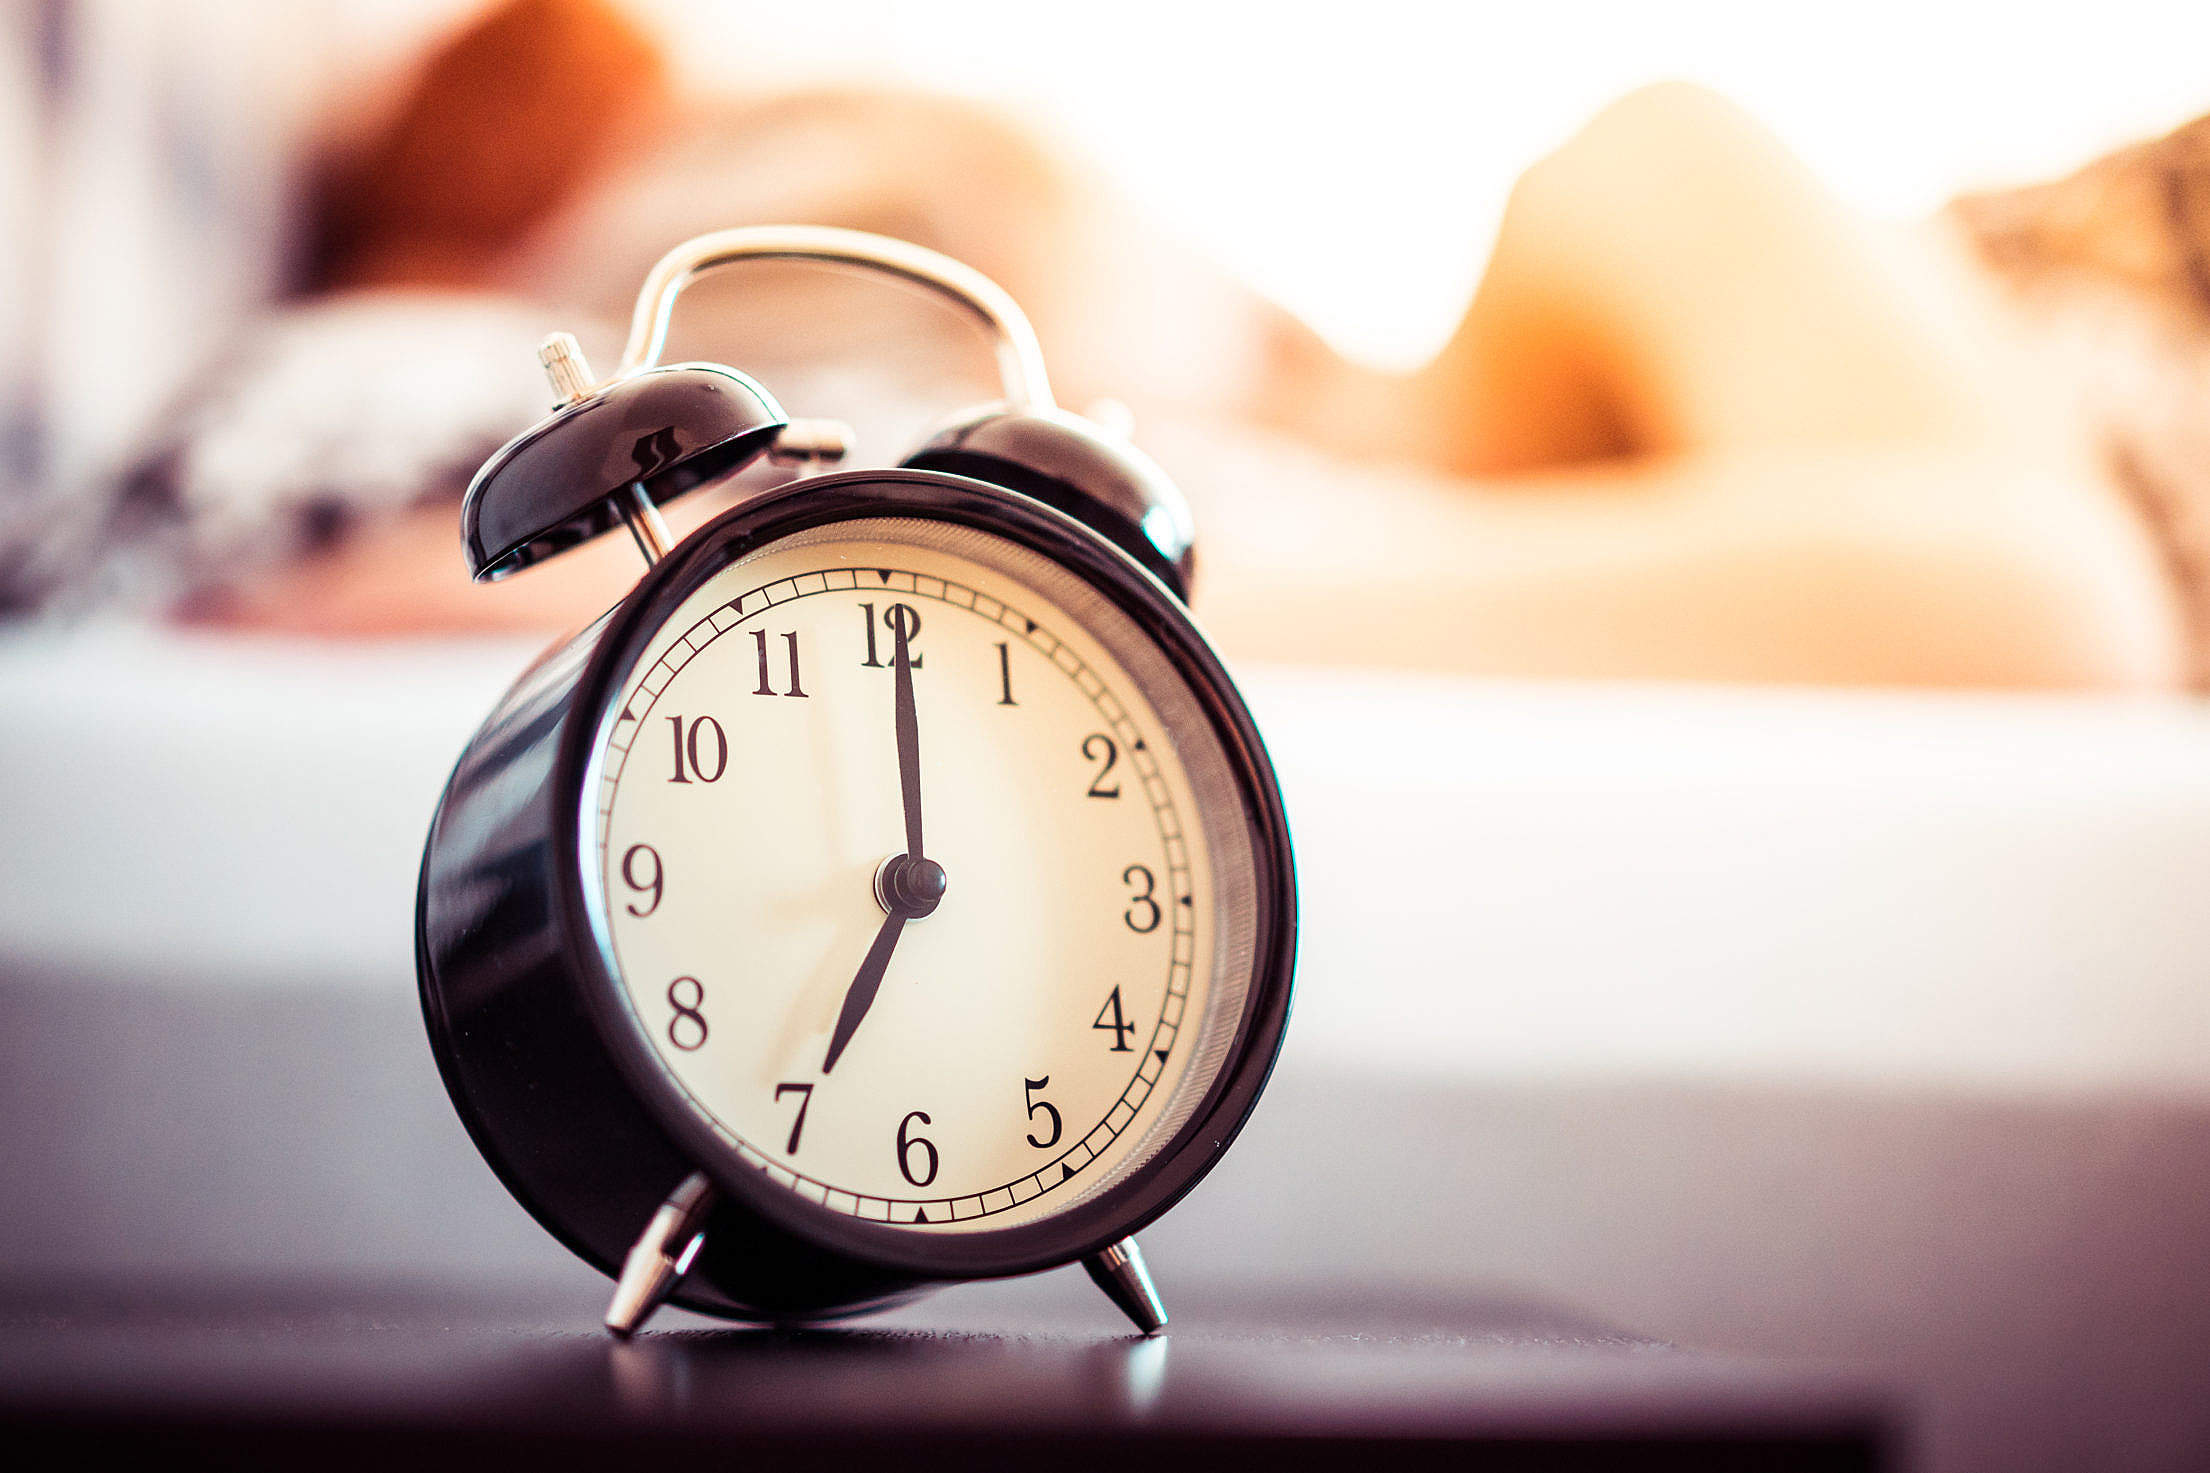 Vintage Alarm Clock and Sleeping Woman Free Stock Photo